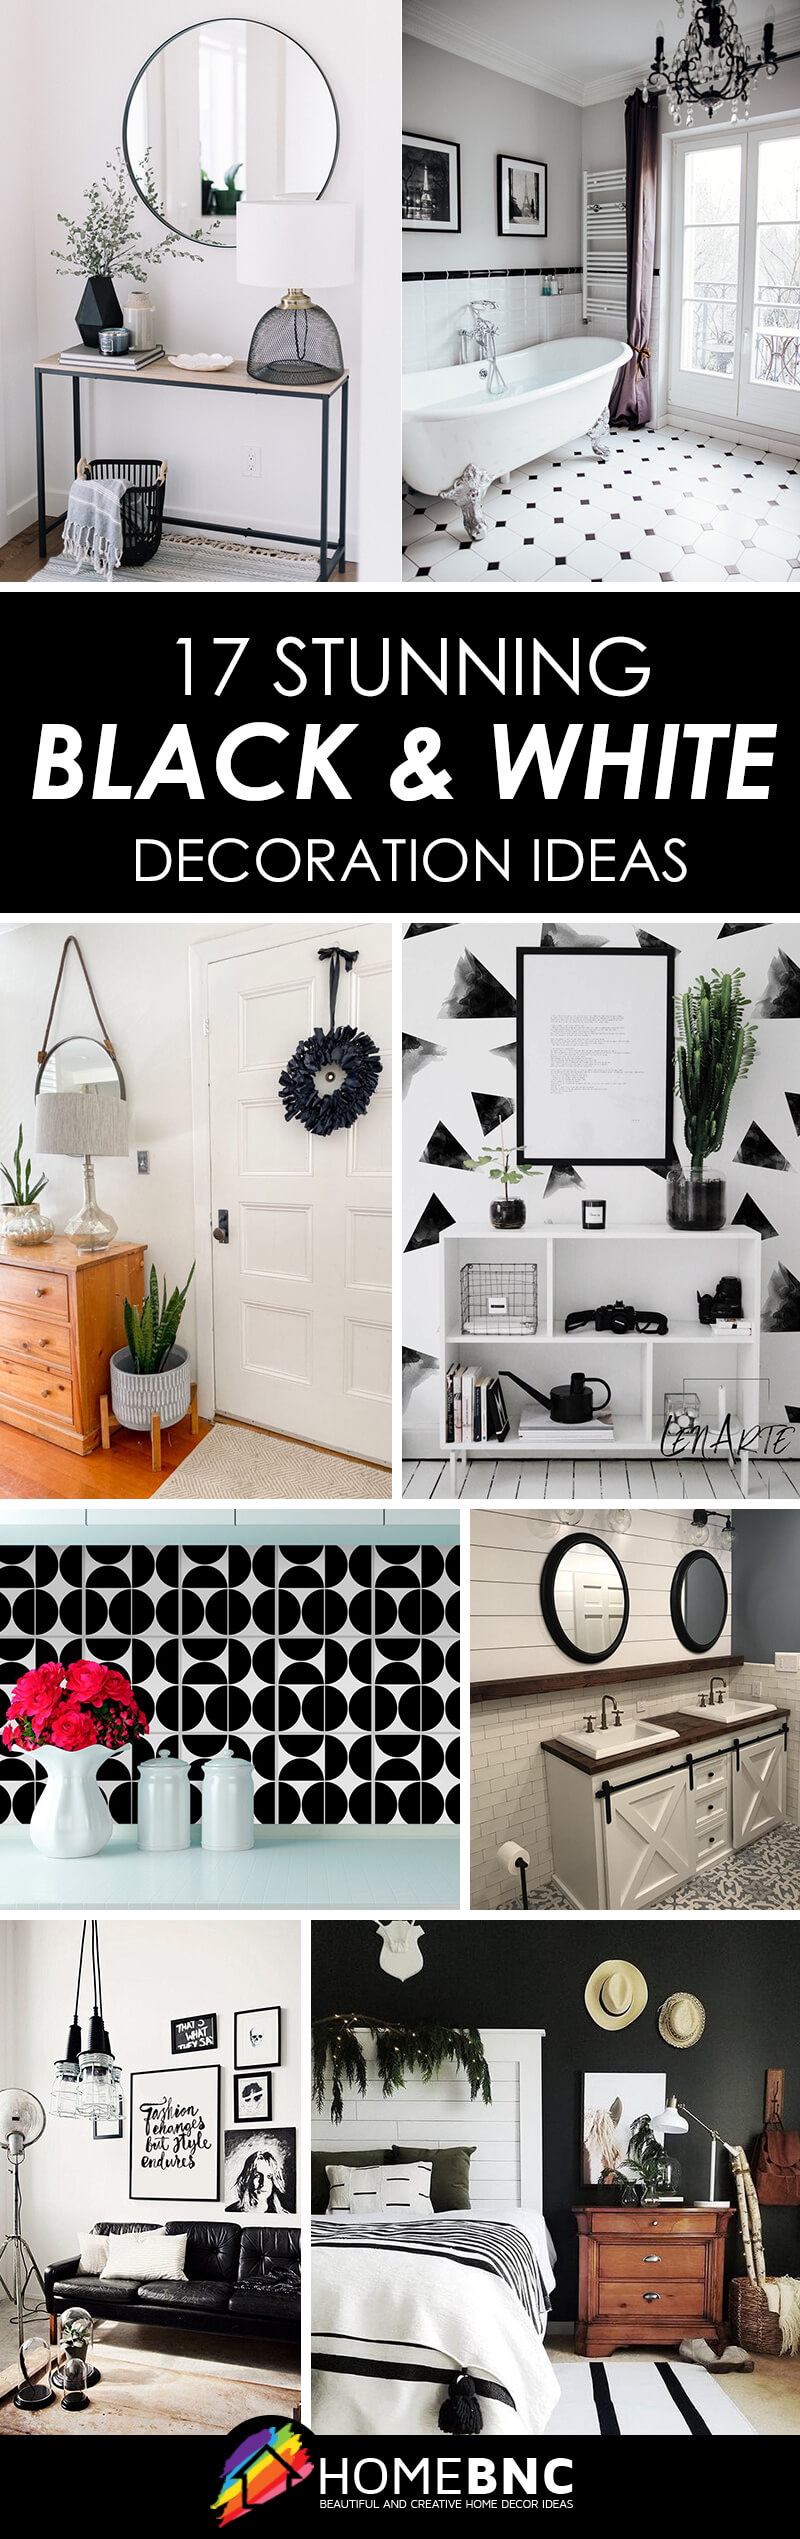 Best Black and White Home Decor Ideas and Designs